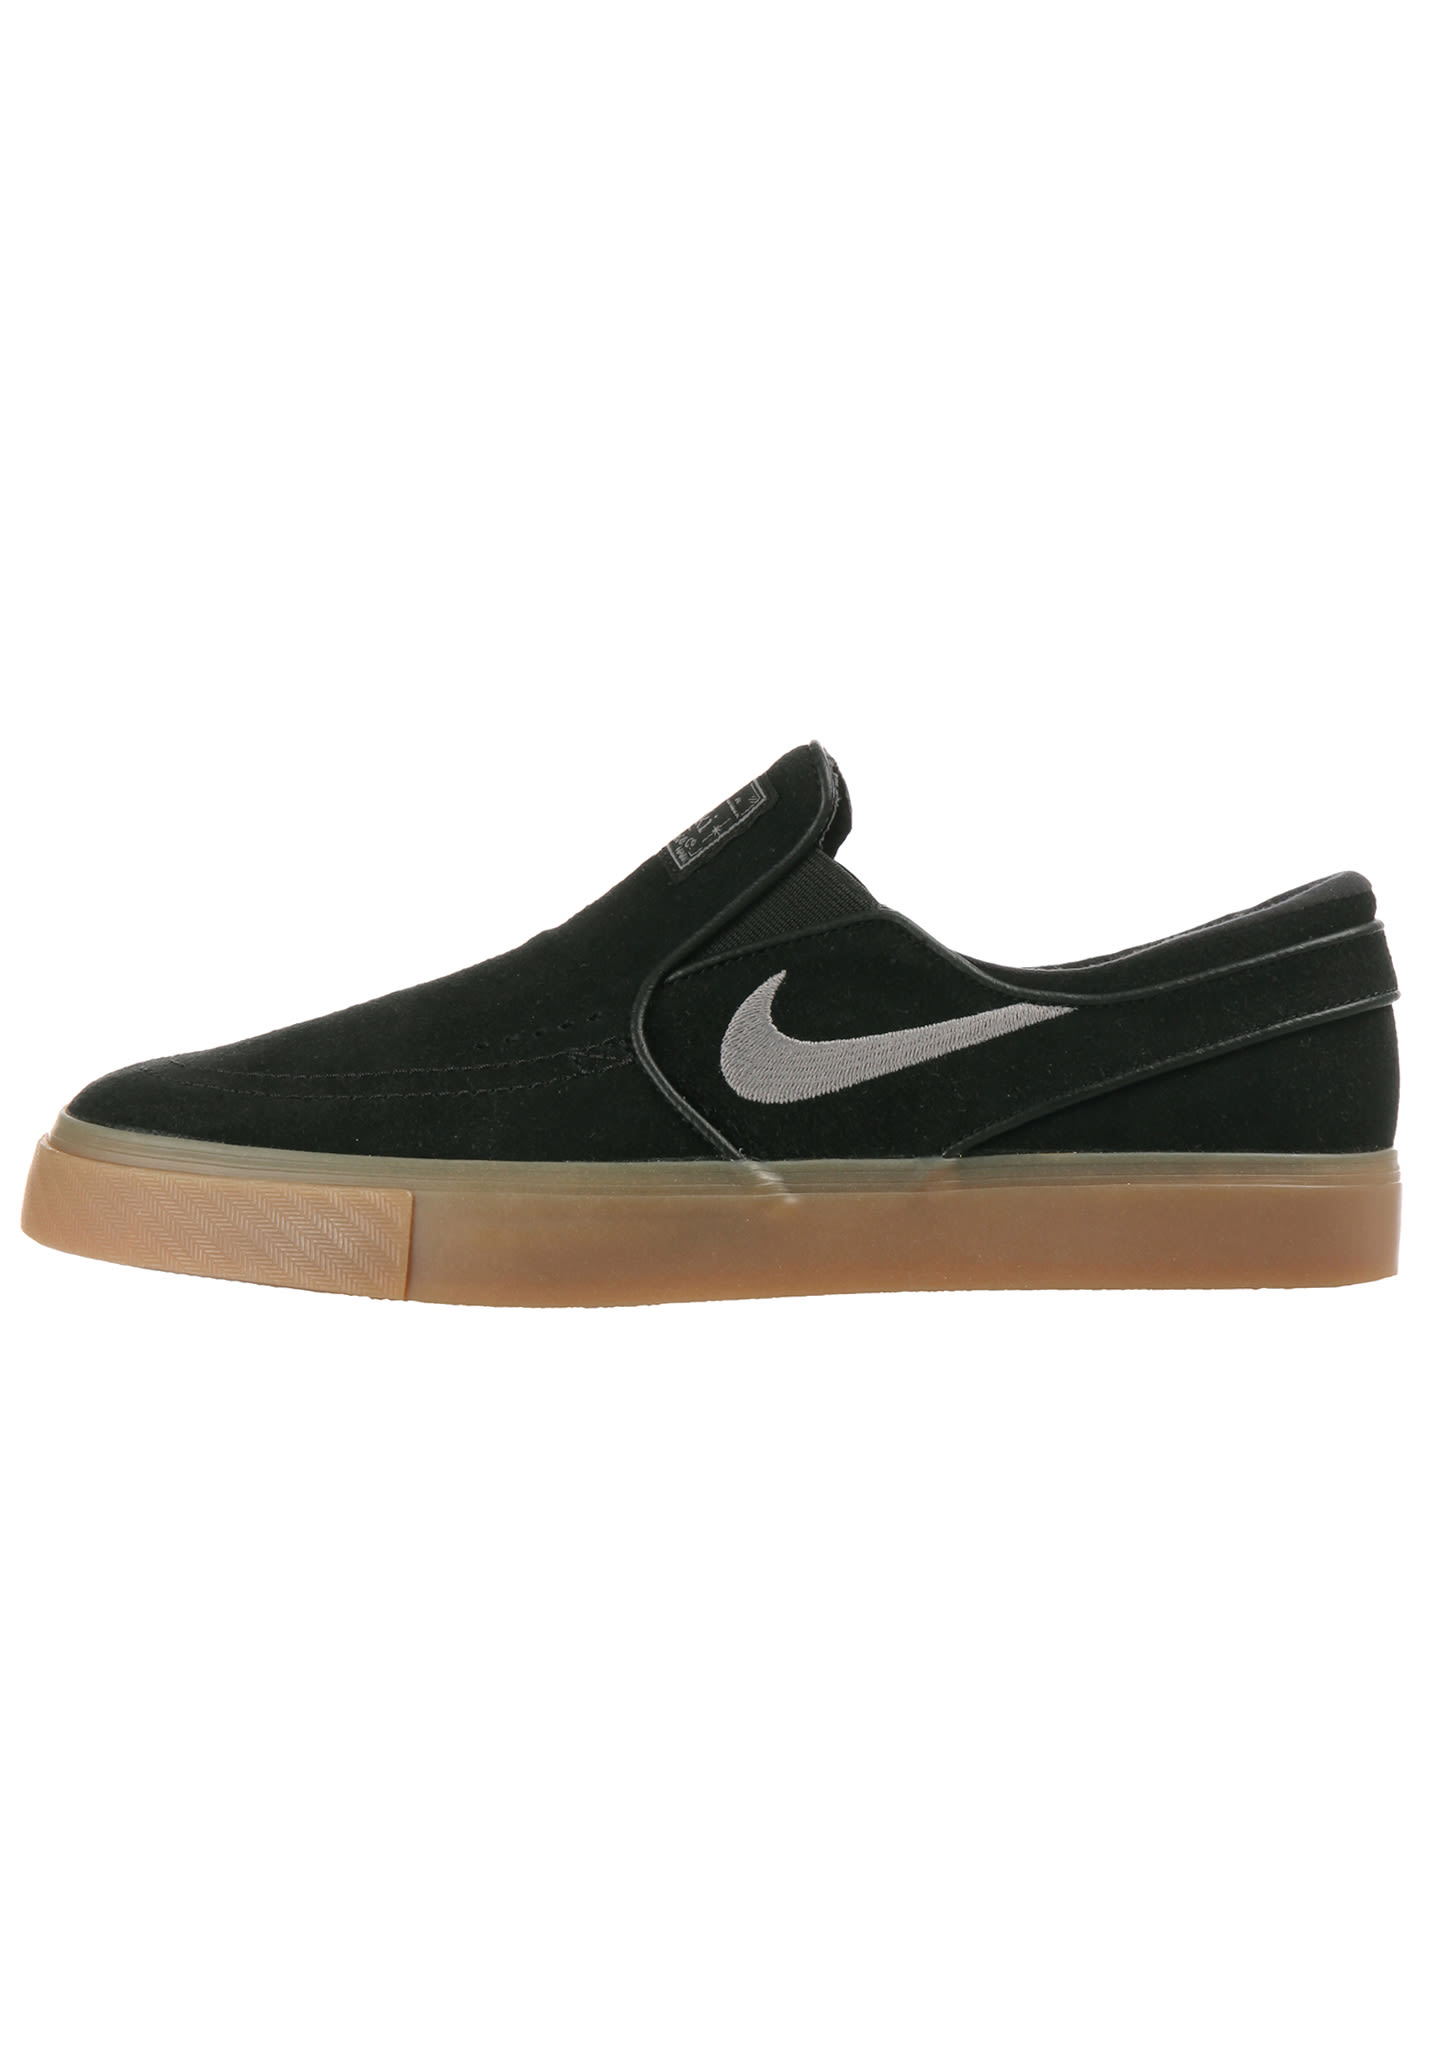 67161f09c3aa NIKE SB Zoom Stefan Janoski - Slip-Ons for Men - Black - Planet Sports